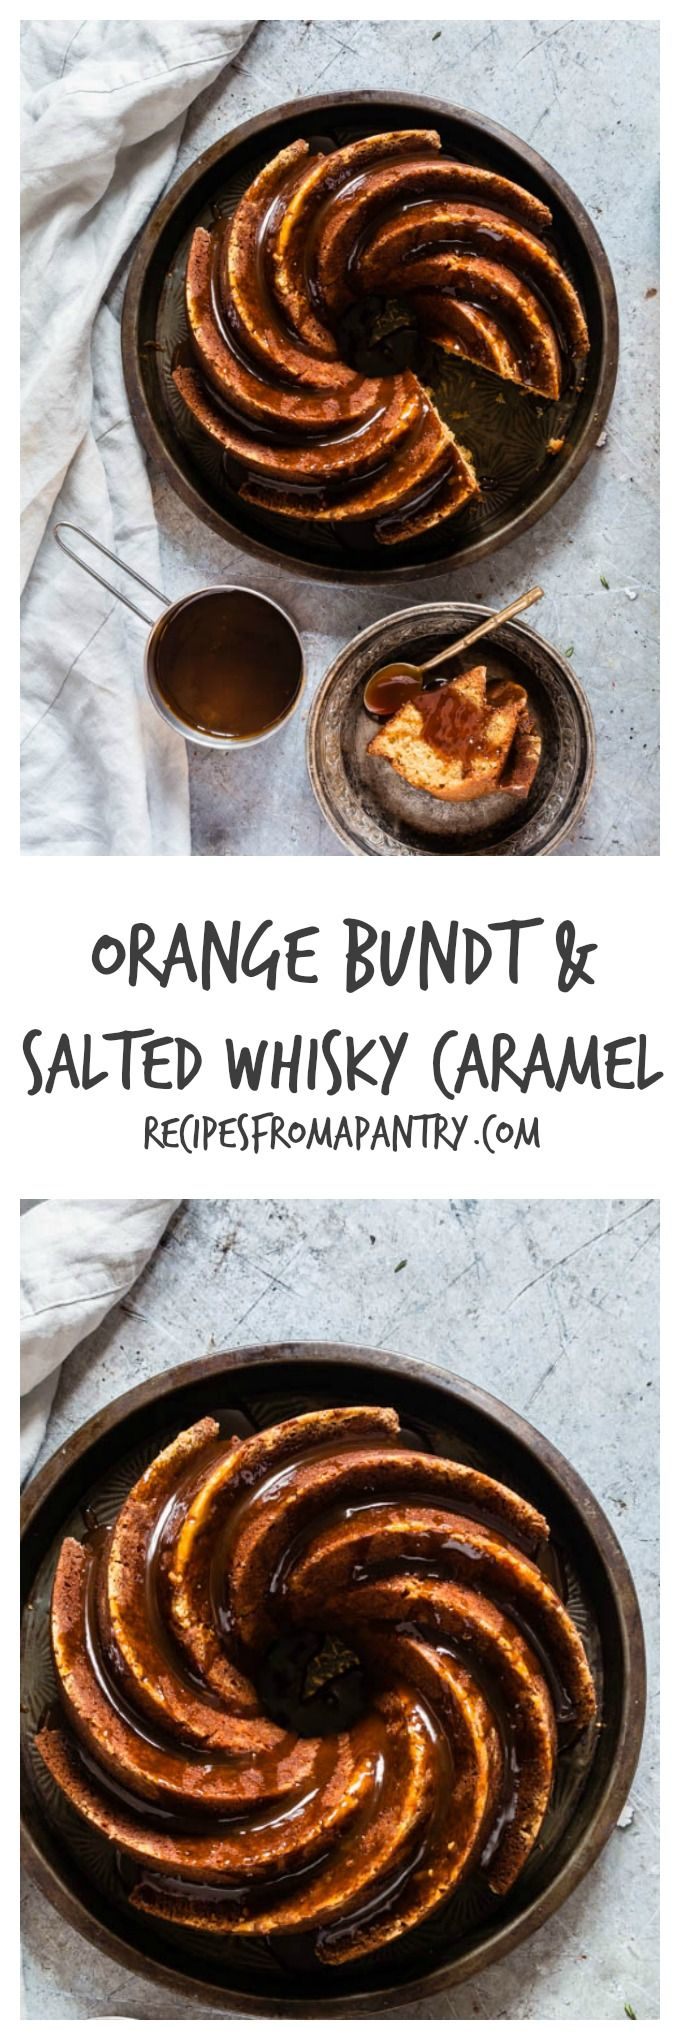 Orange Bundt Cake With Salted Whisky Caramel | Recipes From A Pantry